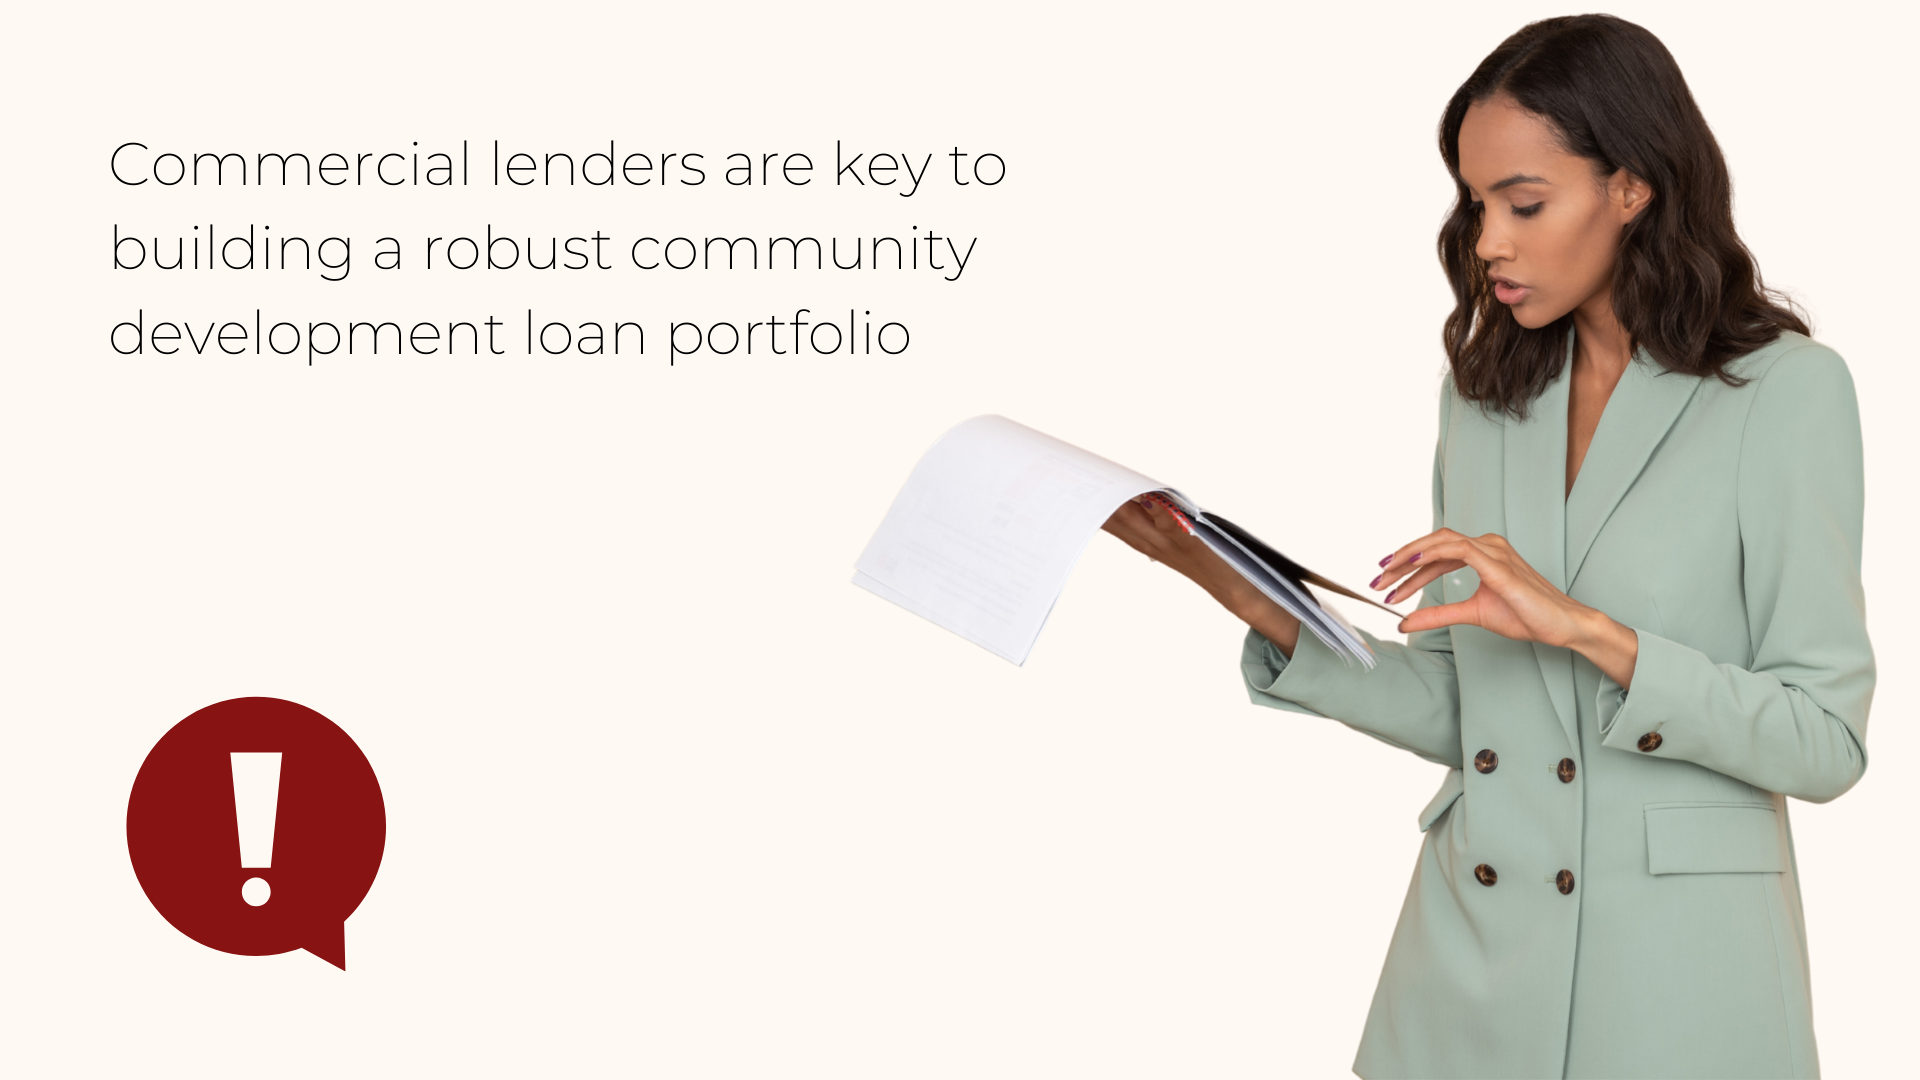 Commercial lenders are key to building a robust community development loan portfolio.